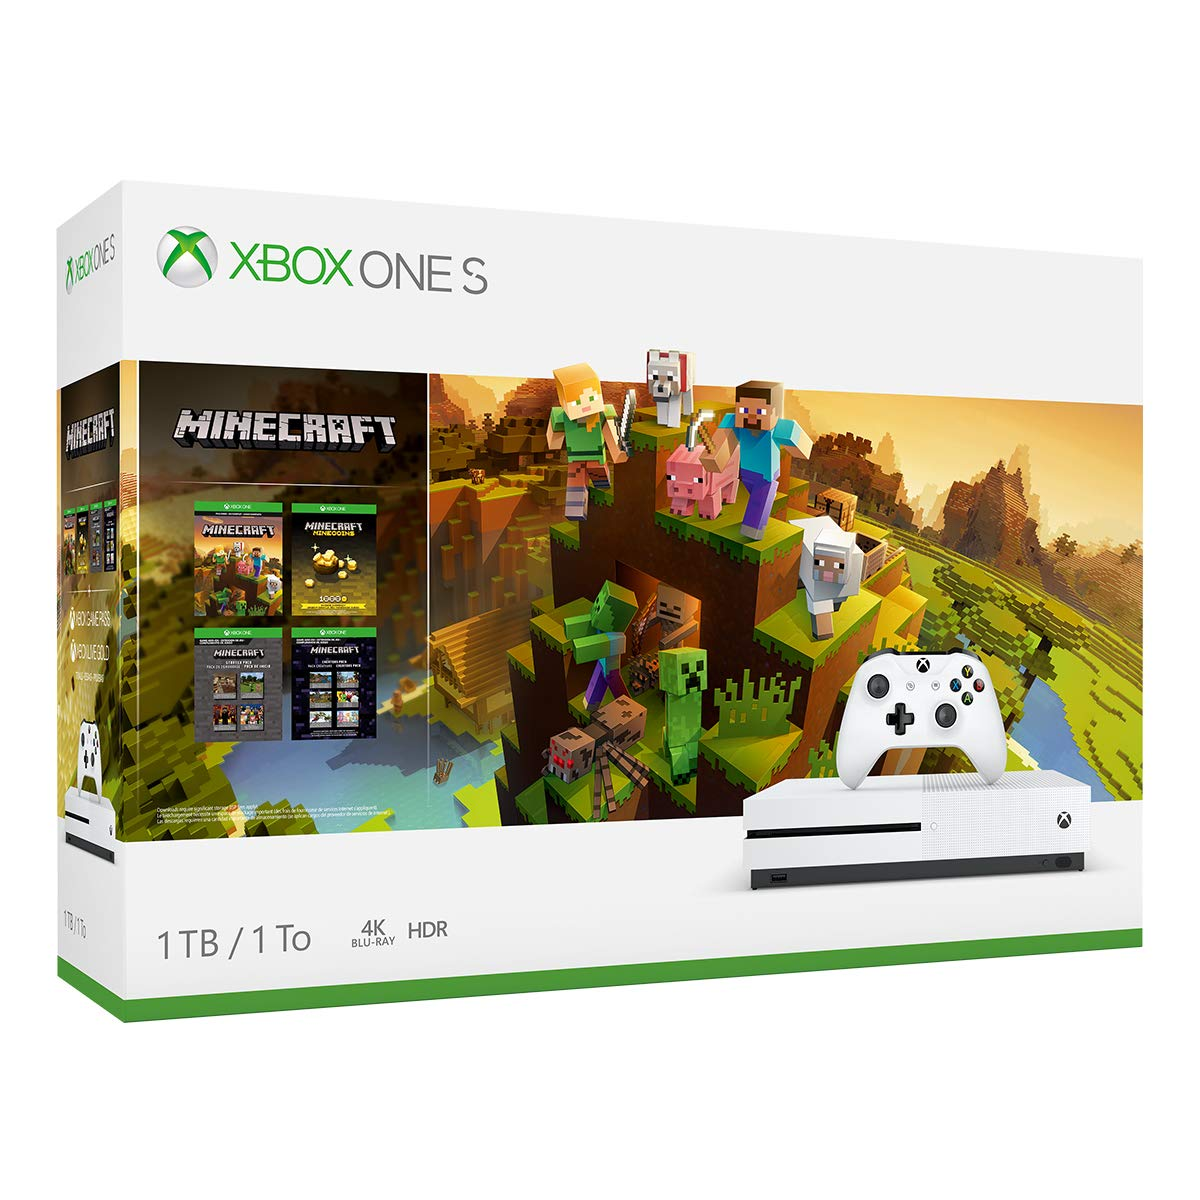 Xbox One S 1TB Console - Minecraft Creators Bundle (Discontinued) by Microsoft (Image #3)